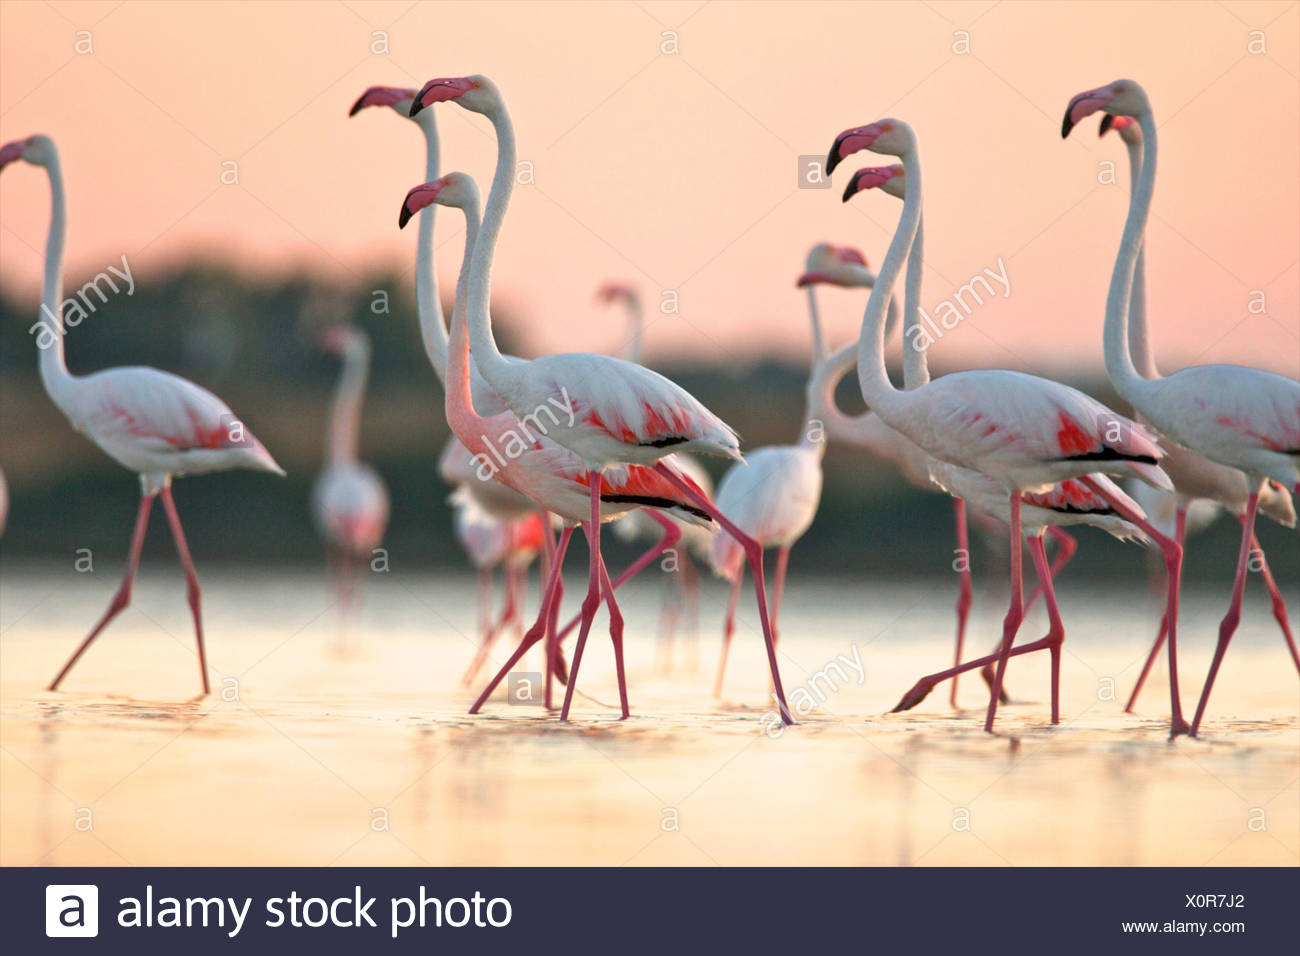 Group of flamingos at dawn, Oristano Region in Sardinia, Italy - Stock Image